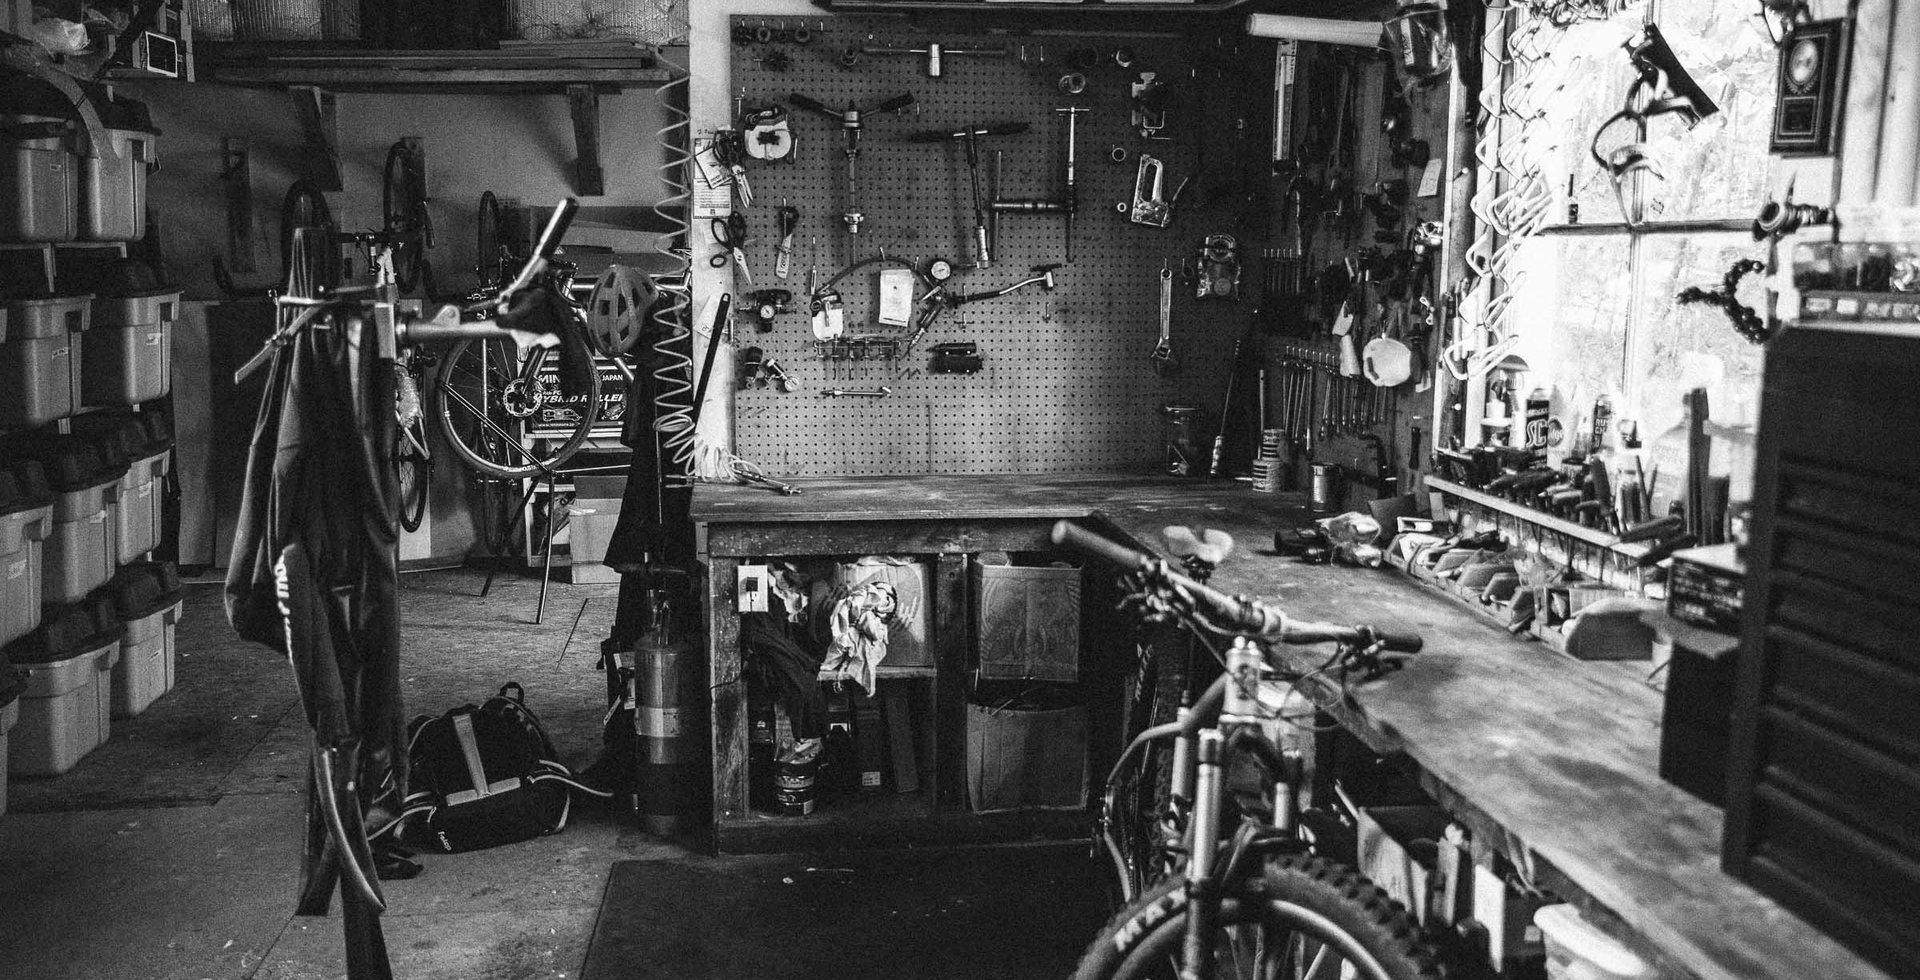 Whittingham's workspace is a place most mountain bikers only dream about. Running a business out of a shop is no easy task though; it requires a knack for organization and an ability to stay focused.